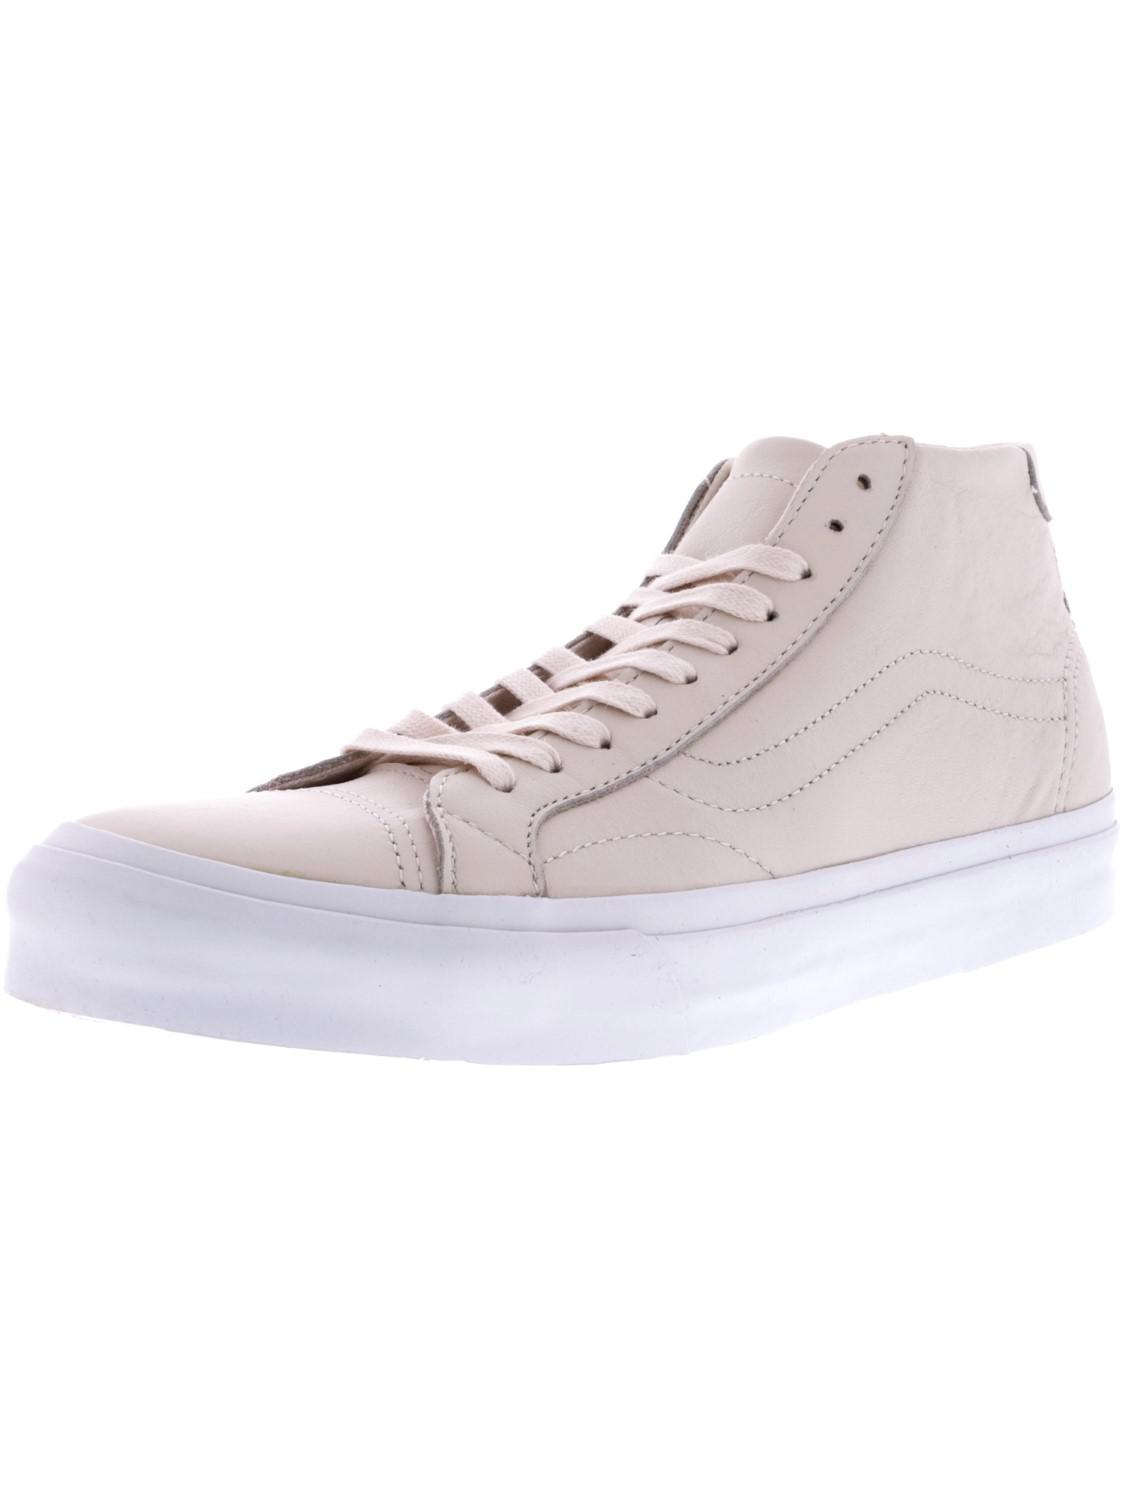 5620234113db88 Lyst - Vans Court Mid Dx Leather Ankle-high Canvas Skateboarding ...